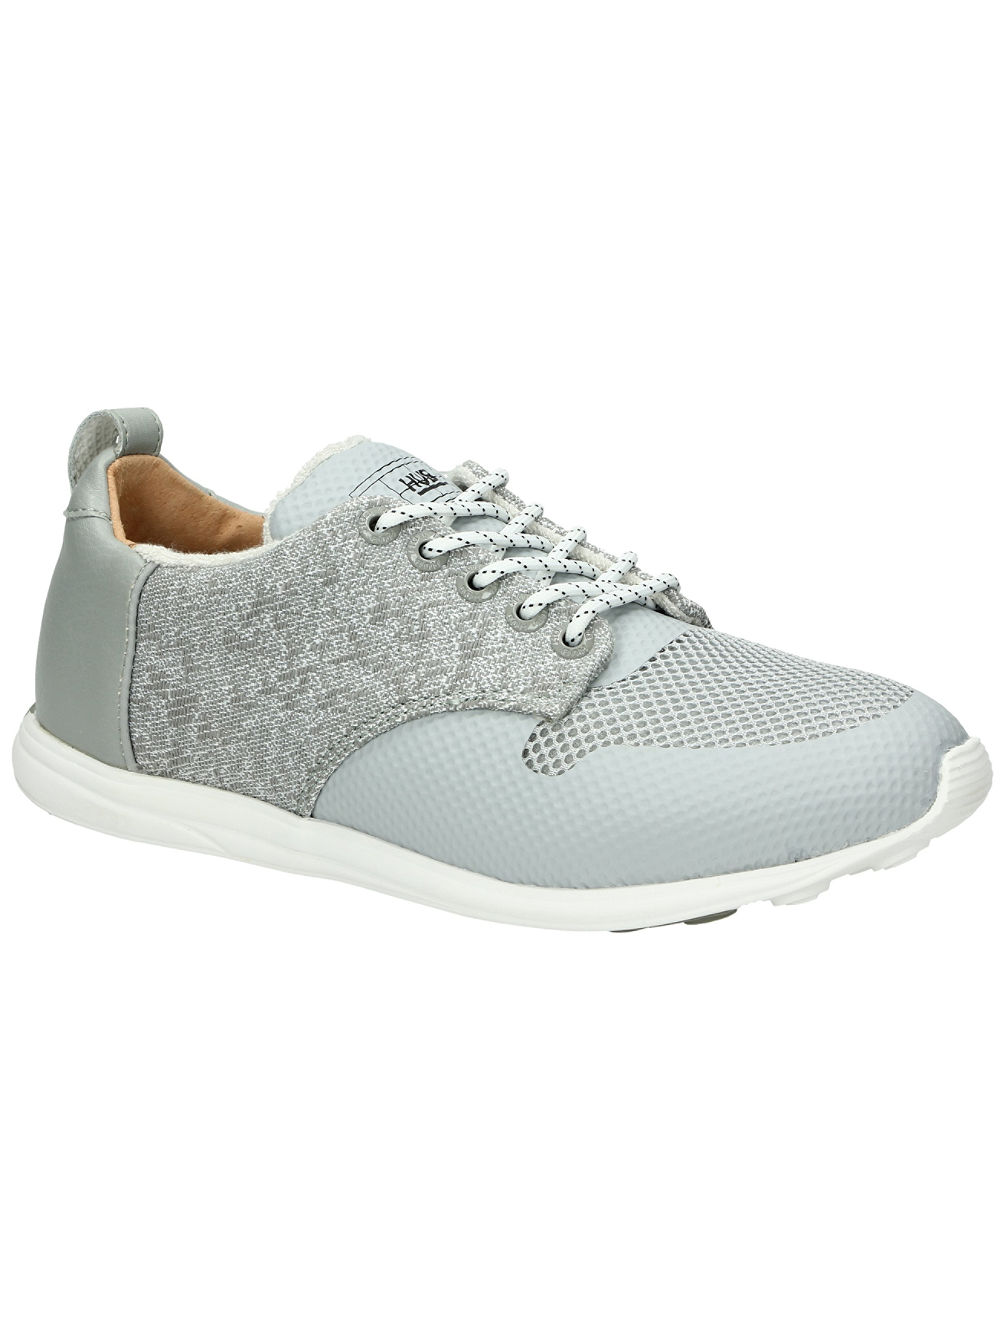 City Sneakers Frauen